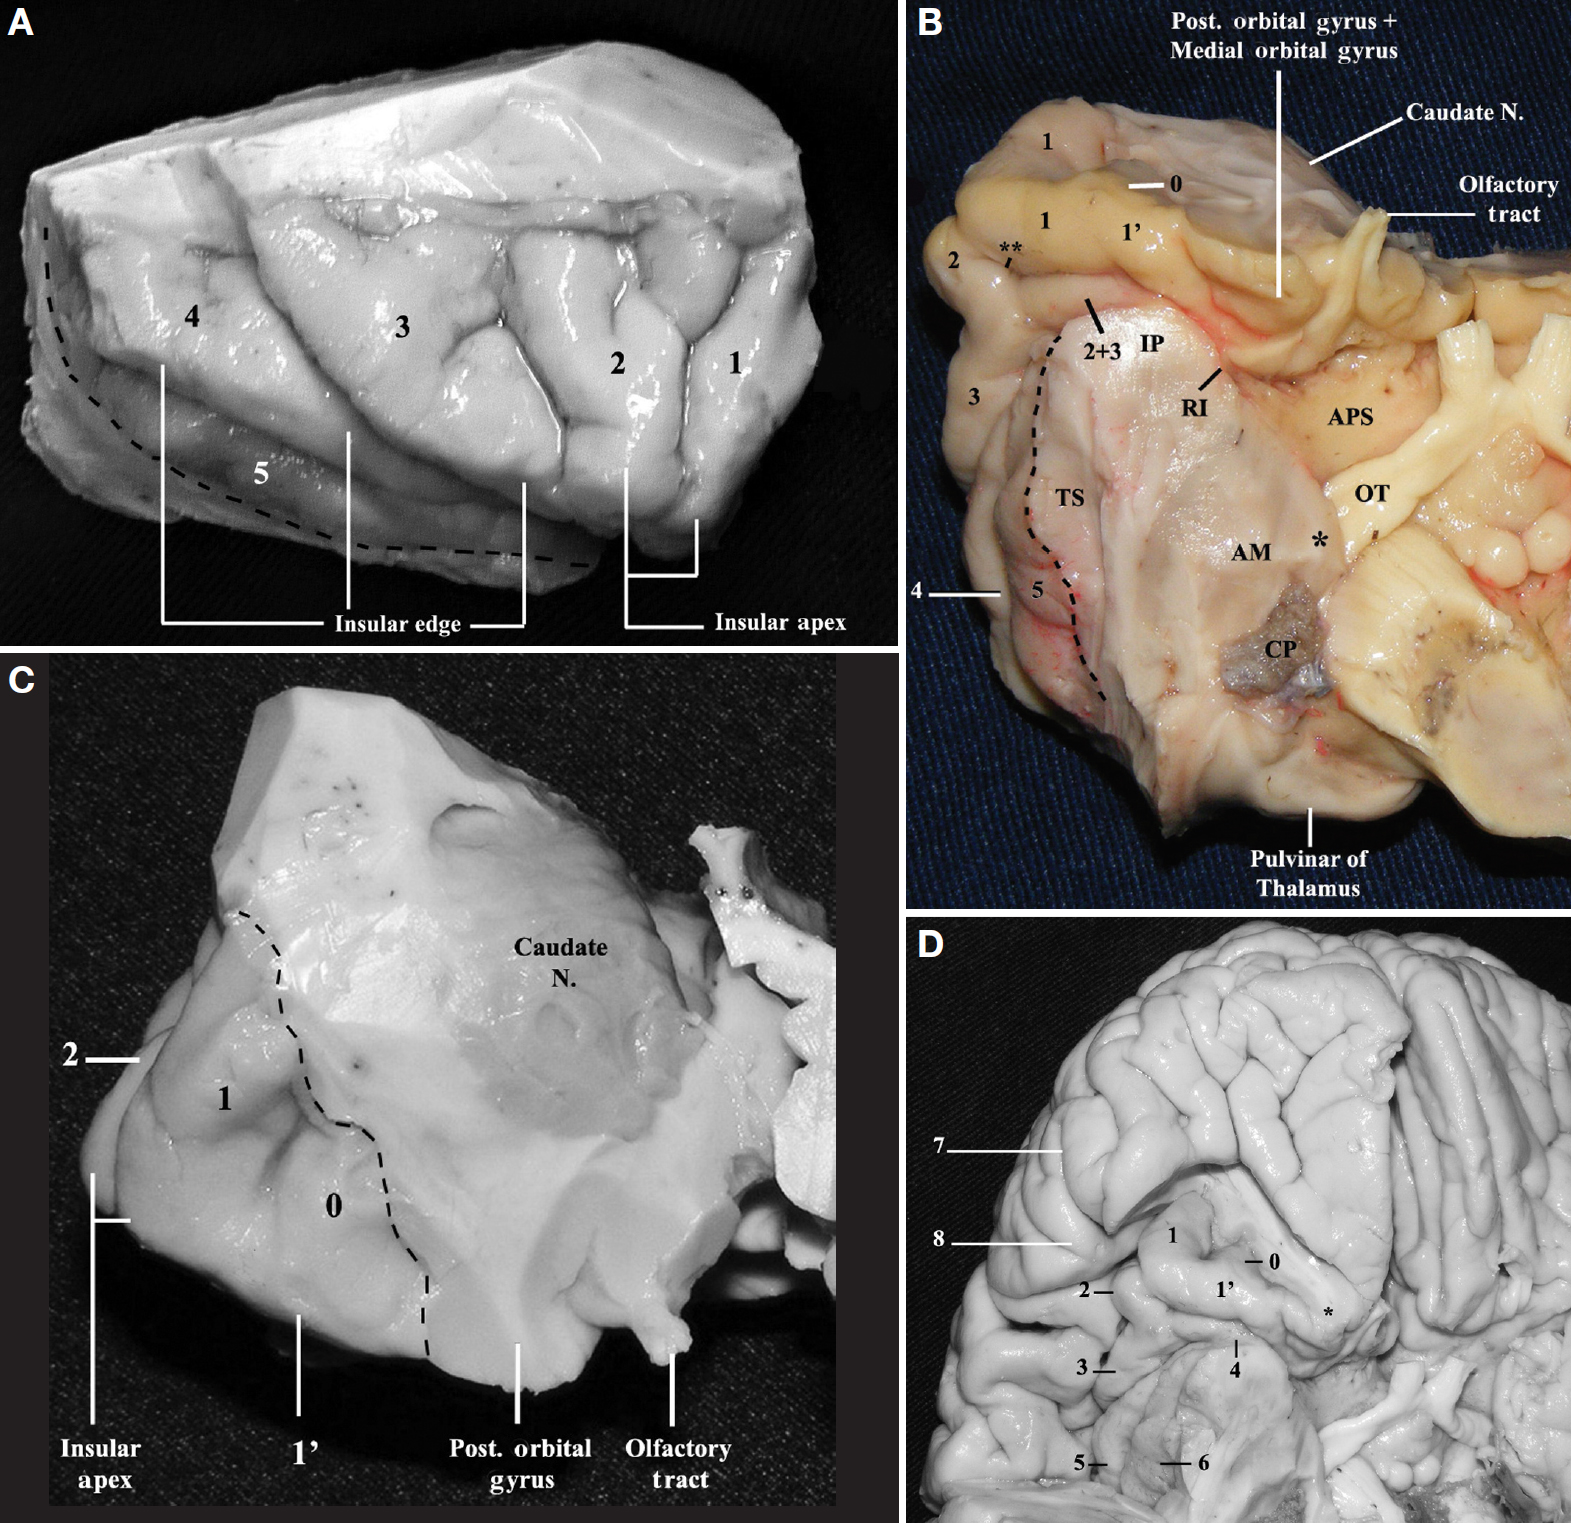 Figure 6 (A–D). A, lateral view of the right insula. In this specimen, the short insular sulcus that separates the anterior and the middle short gyri traverses the insular apex and extends to the limen insulae. 1, anterior short gyrus; 2, middle short gyrus; 3, posterior short gyrus; 4, anterior long gyrus; 5, posterior long gyrus. The central sulcus of the insula is located between the posterior short gyrus and the anterior long gyrus of the insula. The dotted line indicates the inferior limiting sulcus of the insula. B, basal view of the right insula to display the inferolateral facet. In this specimen, the short insular sulcus that runs between the anterior and middle short gyri also traverses the insular apex and extends to the limen insulae. 0, accessory gyrus; 1', transverse gyrus of Eberstaller; 1, anterior short gyrus; 2, middle short gyrus; 3, posterior short gyrus; 2 + 3, fusion of the middle and posterior short gyri; 4, anterior long gyrus; 5, posterior long gyrus; IP, insular pole; RI, rhinal incisura; APS, anterior perforated substance; TS, temporal stem; OT, optic tract; AM, amygdala; CP, insertion of the choroid plexus at the inferior choroidal point. Double asterisk, short insular sulcus. The dotted line indicates the inferior limiting sulcus of the insula. Asterisk, medial nucleus of amygdala. The medial nucleus of the amygdala is located anterior and slightly superior to the inferior choroidal point, and it is in close proximity to the optic tract and the upper part of the crus cerebri. The posteromedial orbital lobule is composed of the medial portion of the posterior orbital gyrus and by the posterior portion of the medial orbital gyrus. C, frontal view of the right insula. 0, accessory gyrus; 1', transverse gyrus of Eberstaller; 1, anterior short gyrus; 2, middle short gyrus; Caudate N, head of the caudate nucleus. The dotted line indicates the anterior limiting sulcus of the insula. The insular edge and the superolateral and inferolateral facet